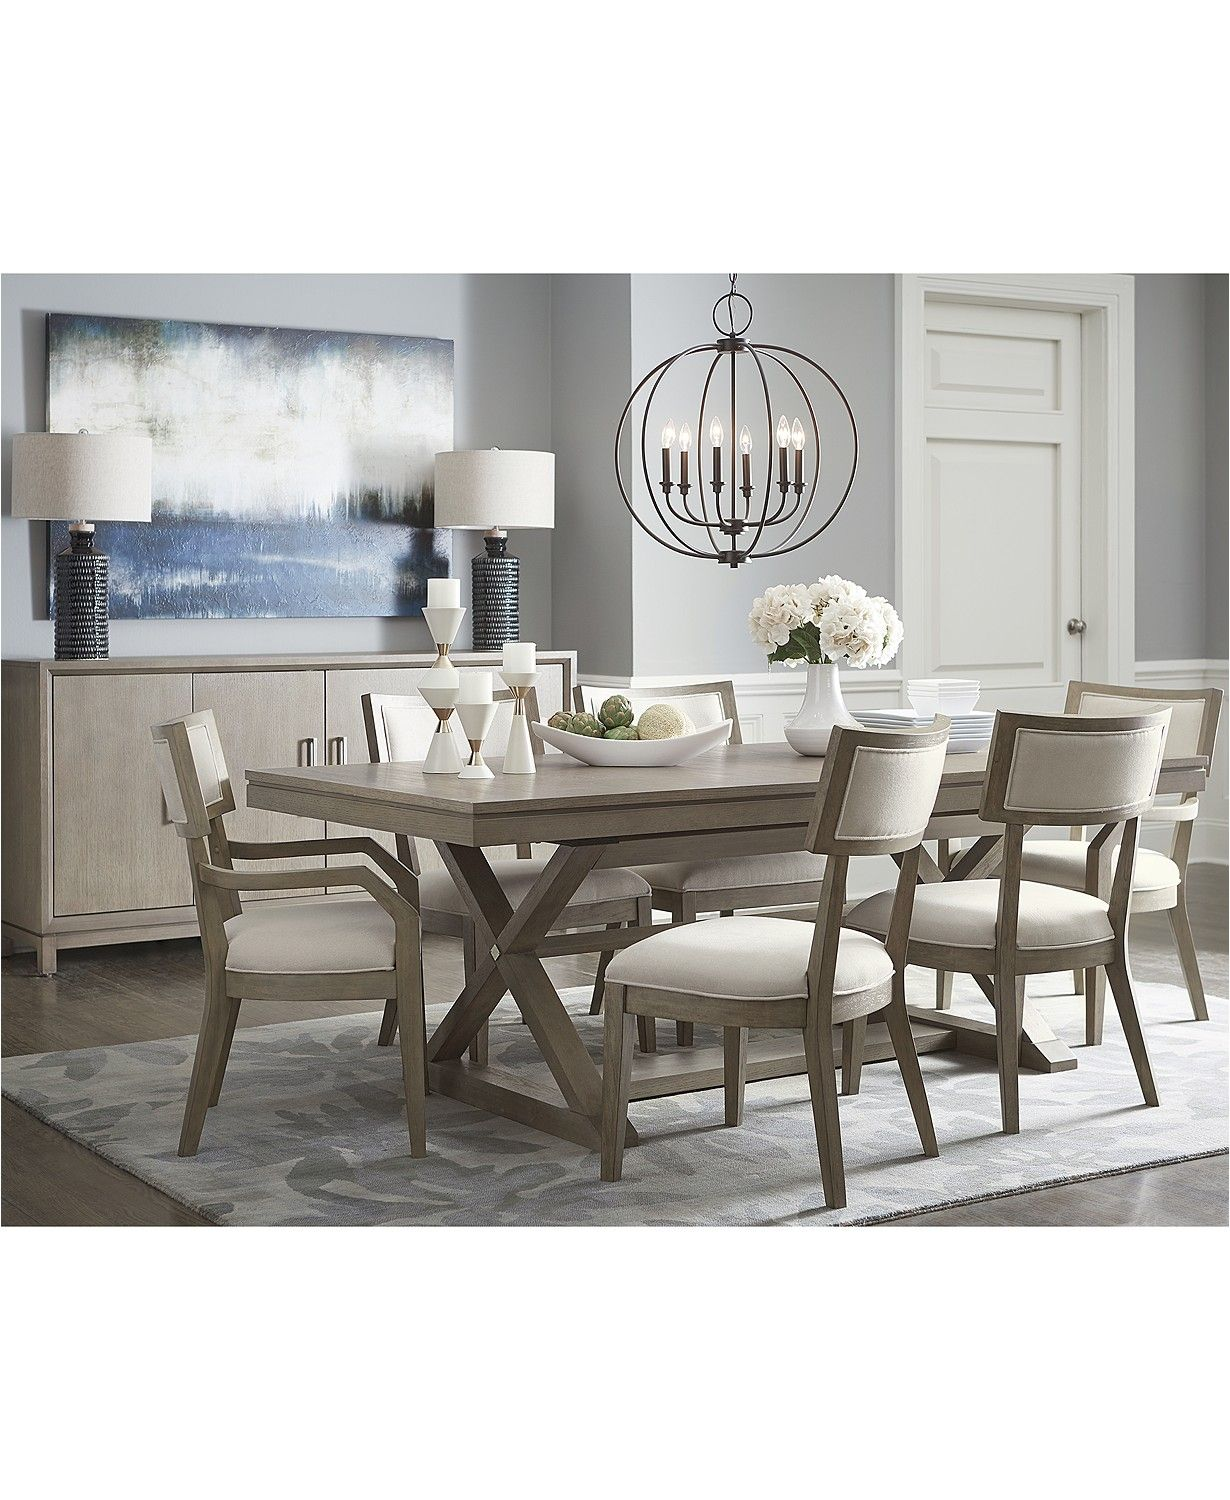 Furniture Rachael Ray Highline Expandable Dining Furniture 9 Pc